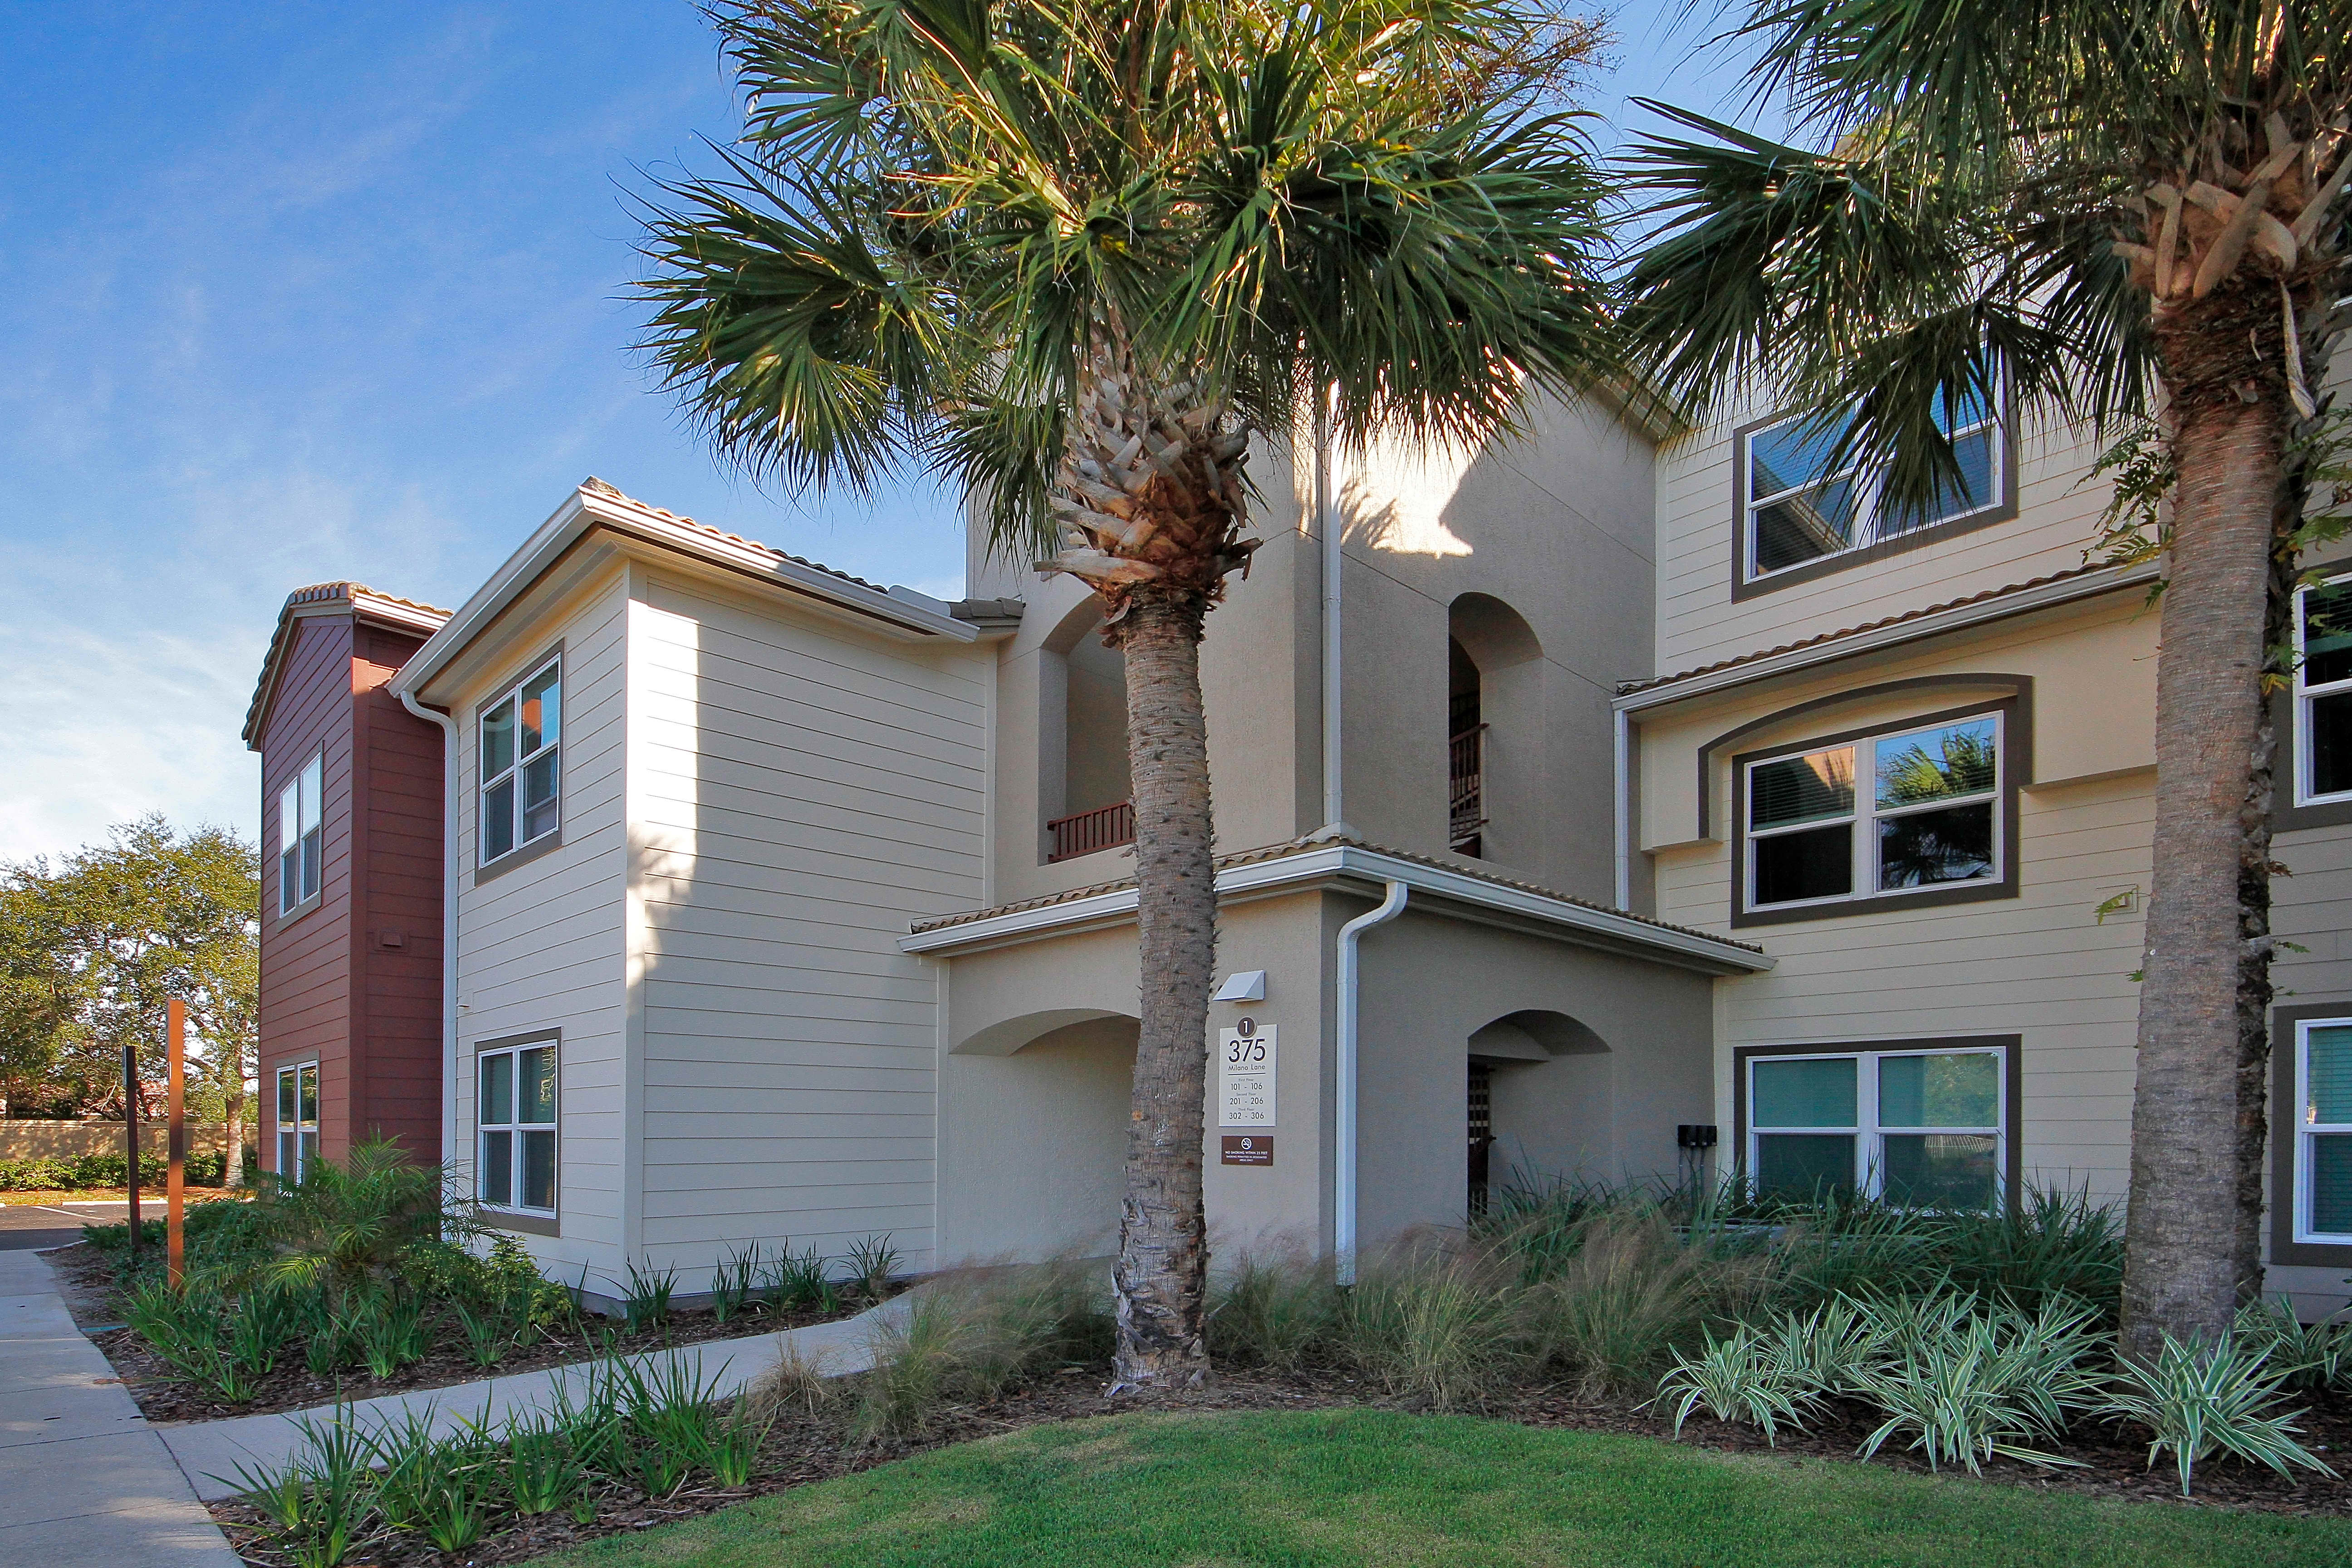 Apartments Near Florida Tech Via Tuscany Apartments for Florida Institute of Technology Students in Melbourne, FL